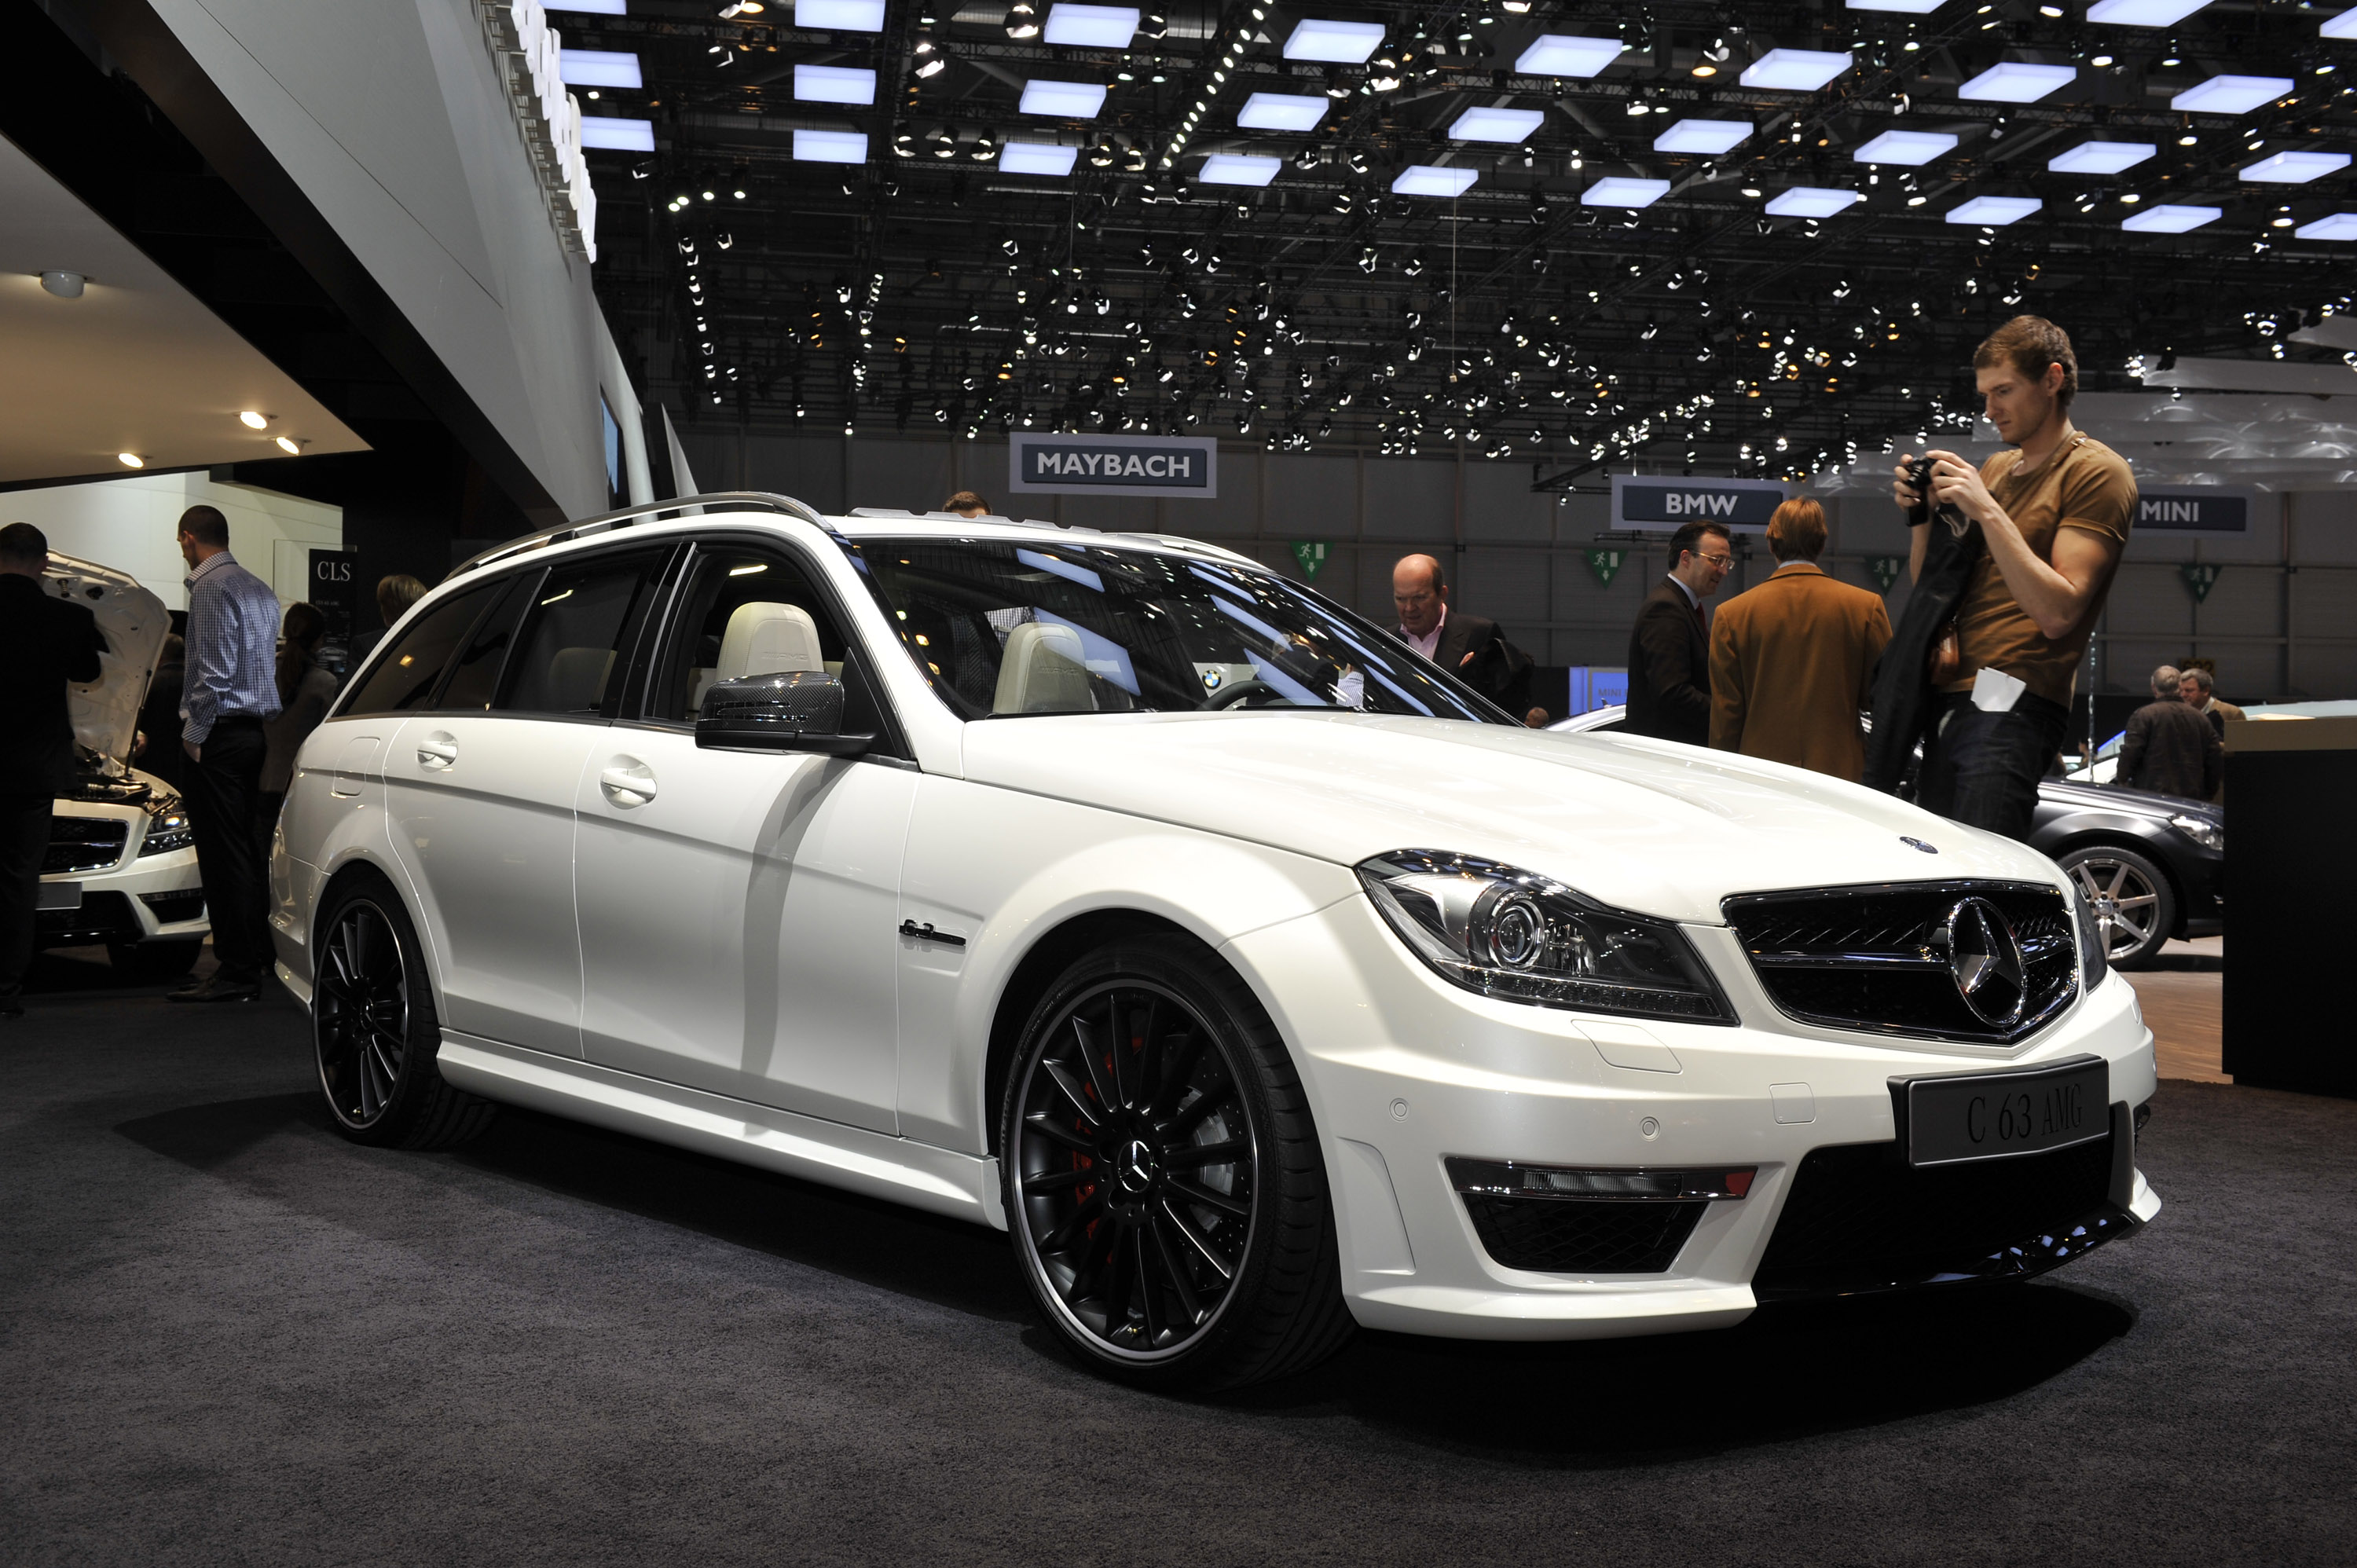 mercedes benz c63 amg estate geneva 2011 picture 50415. Black Bedroom Furniture Sets. Home Design Ideas